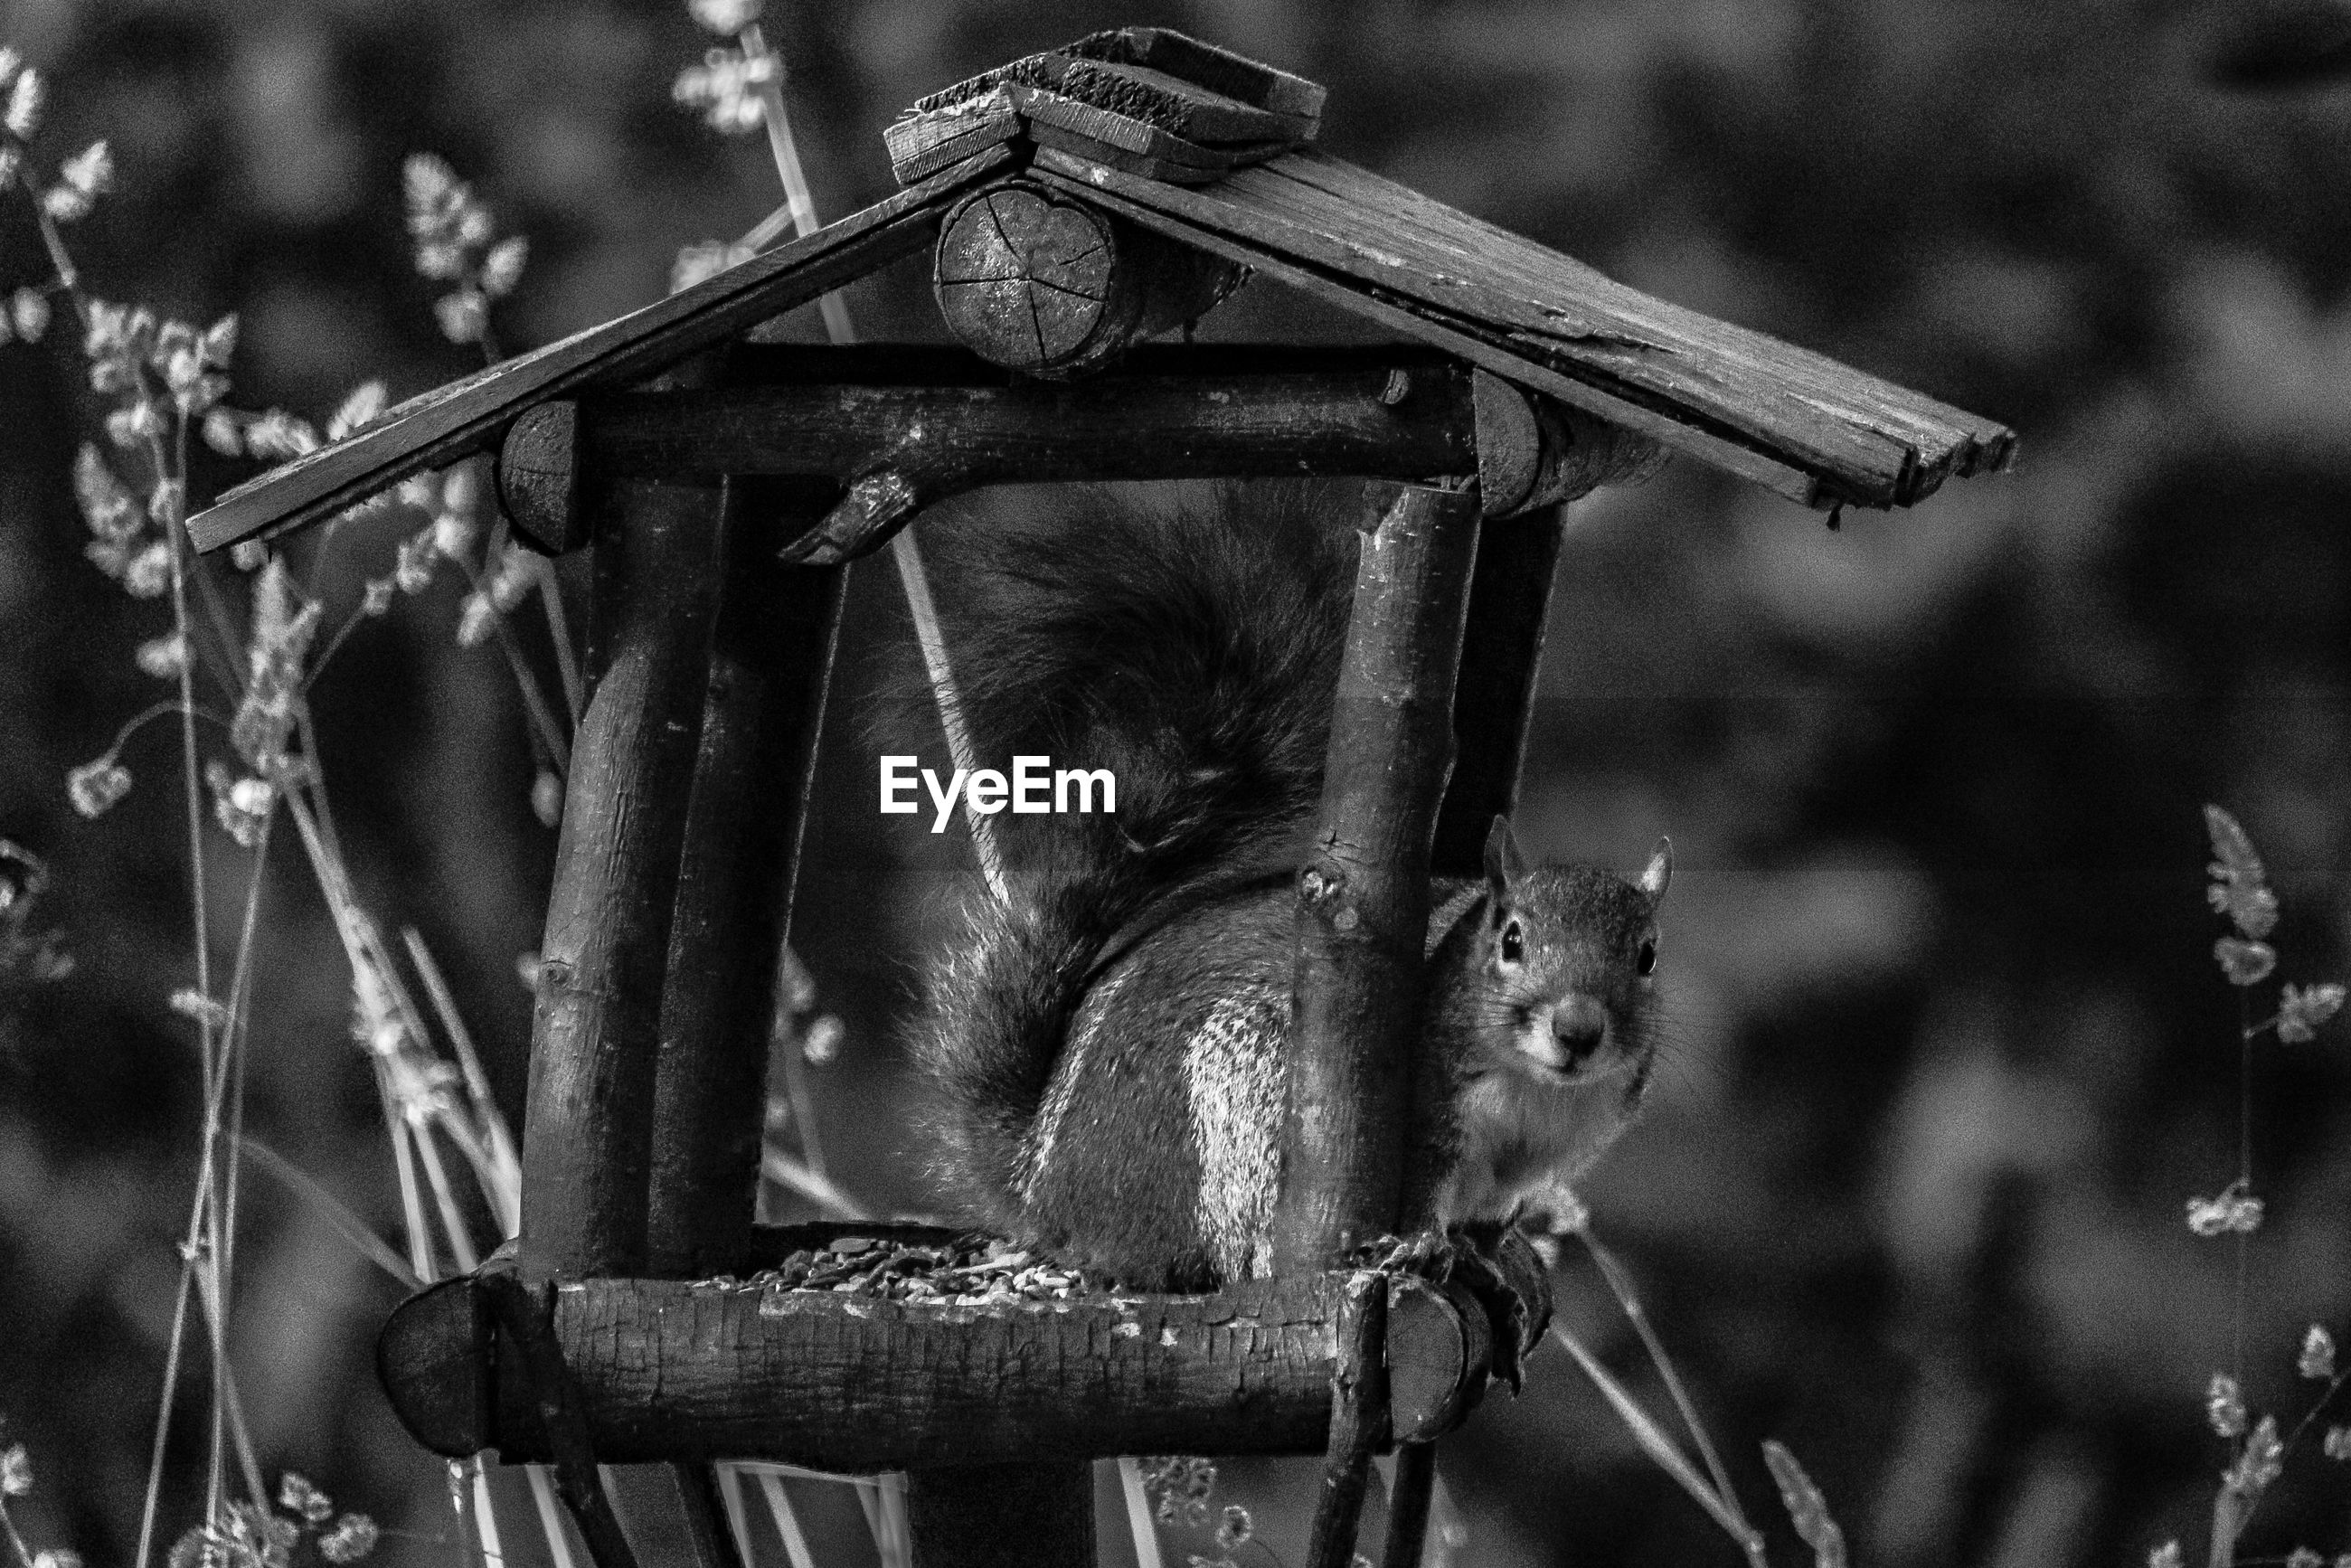 mammal, animal themes, focus on foreground, animal, animal wildlife, no people, one animal, vertebrate, day, primate, nature, monkey, animals in the wild, outdoors, hanging, wood - material, plant, tree, close-up, sitting